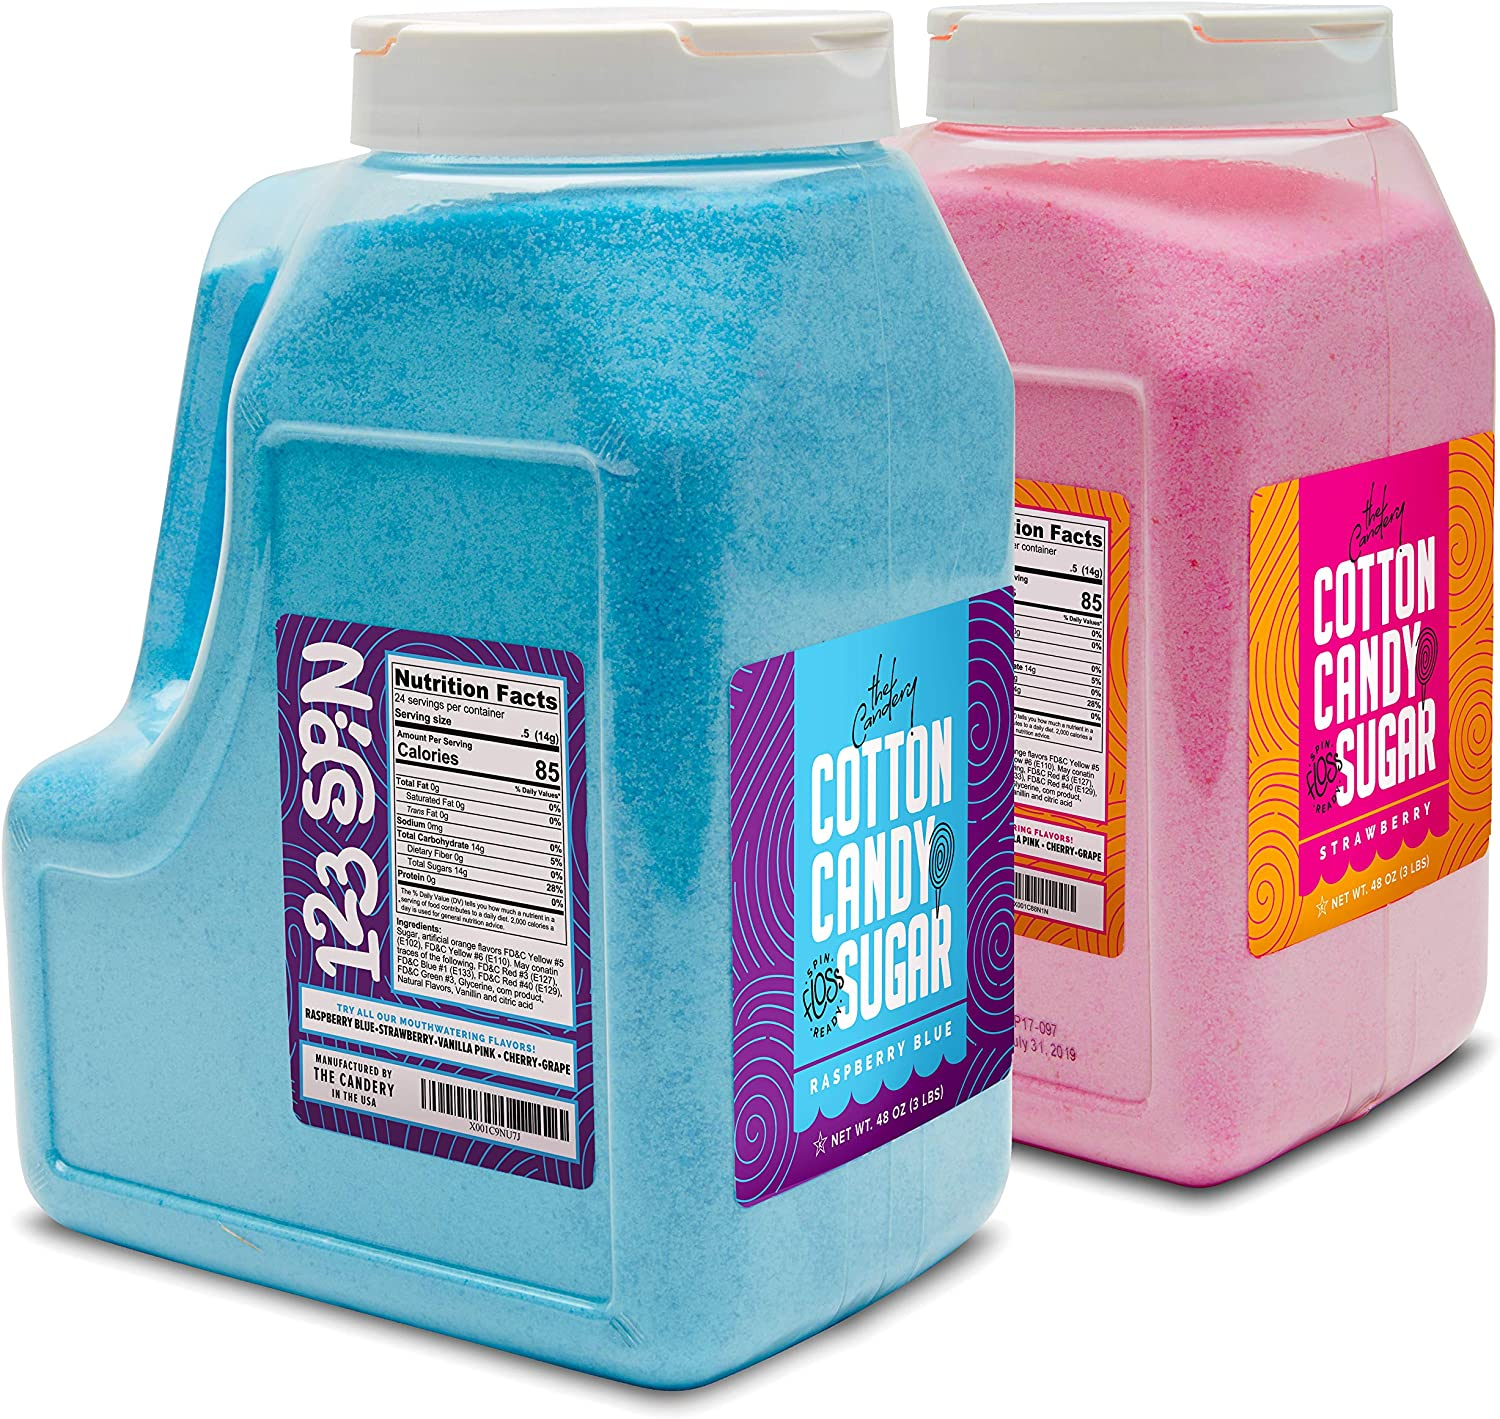 The Candery Cotton Popularity Candy Floss Sugar Stra Pack jars- 2 6lbs 96oz Ranking integrated 1st place